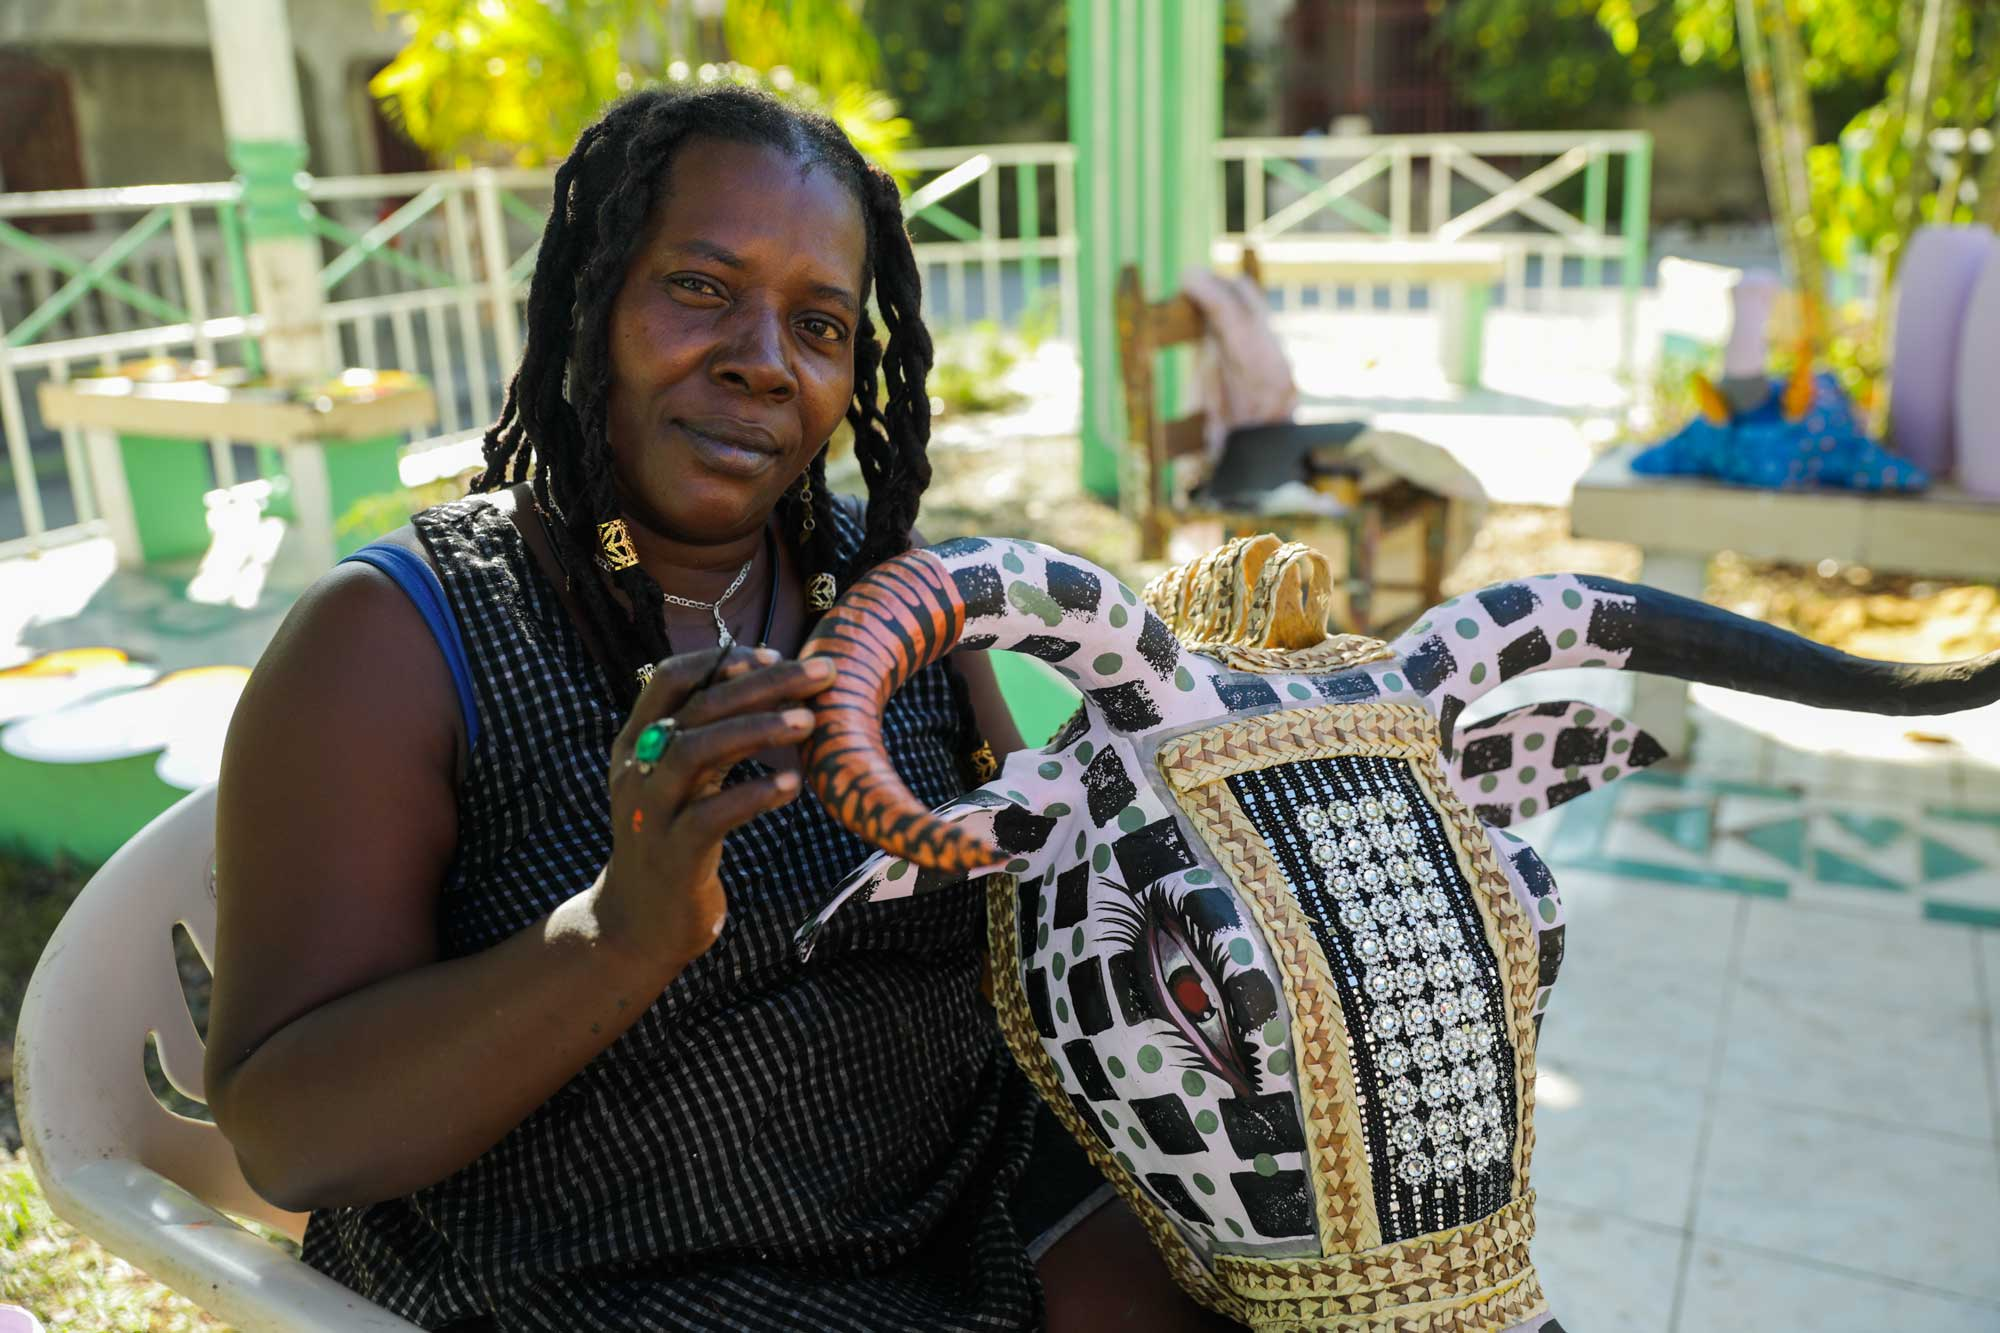 Paper mâché artist Charlotte shows off an intricate cow mask in Jacmel, Haiti